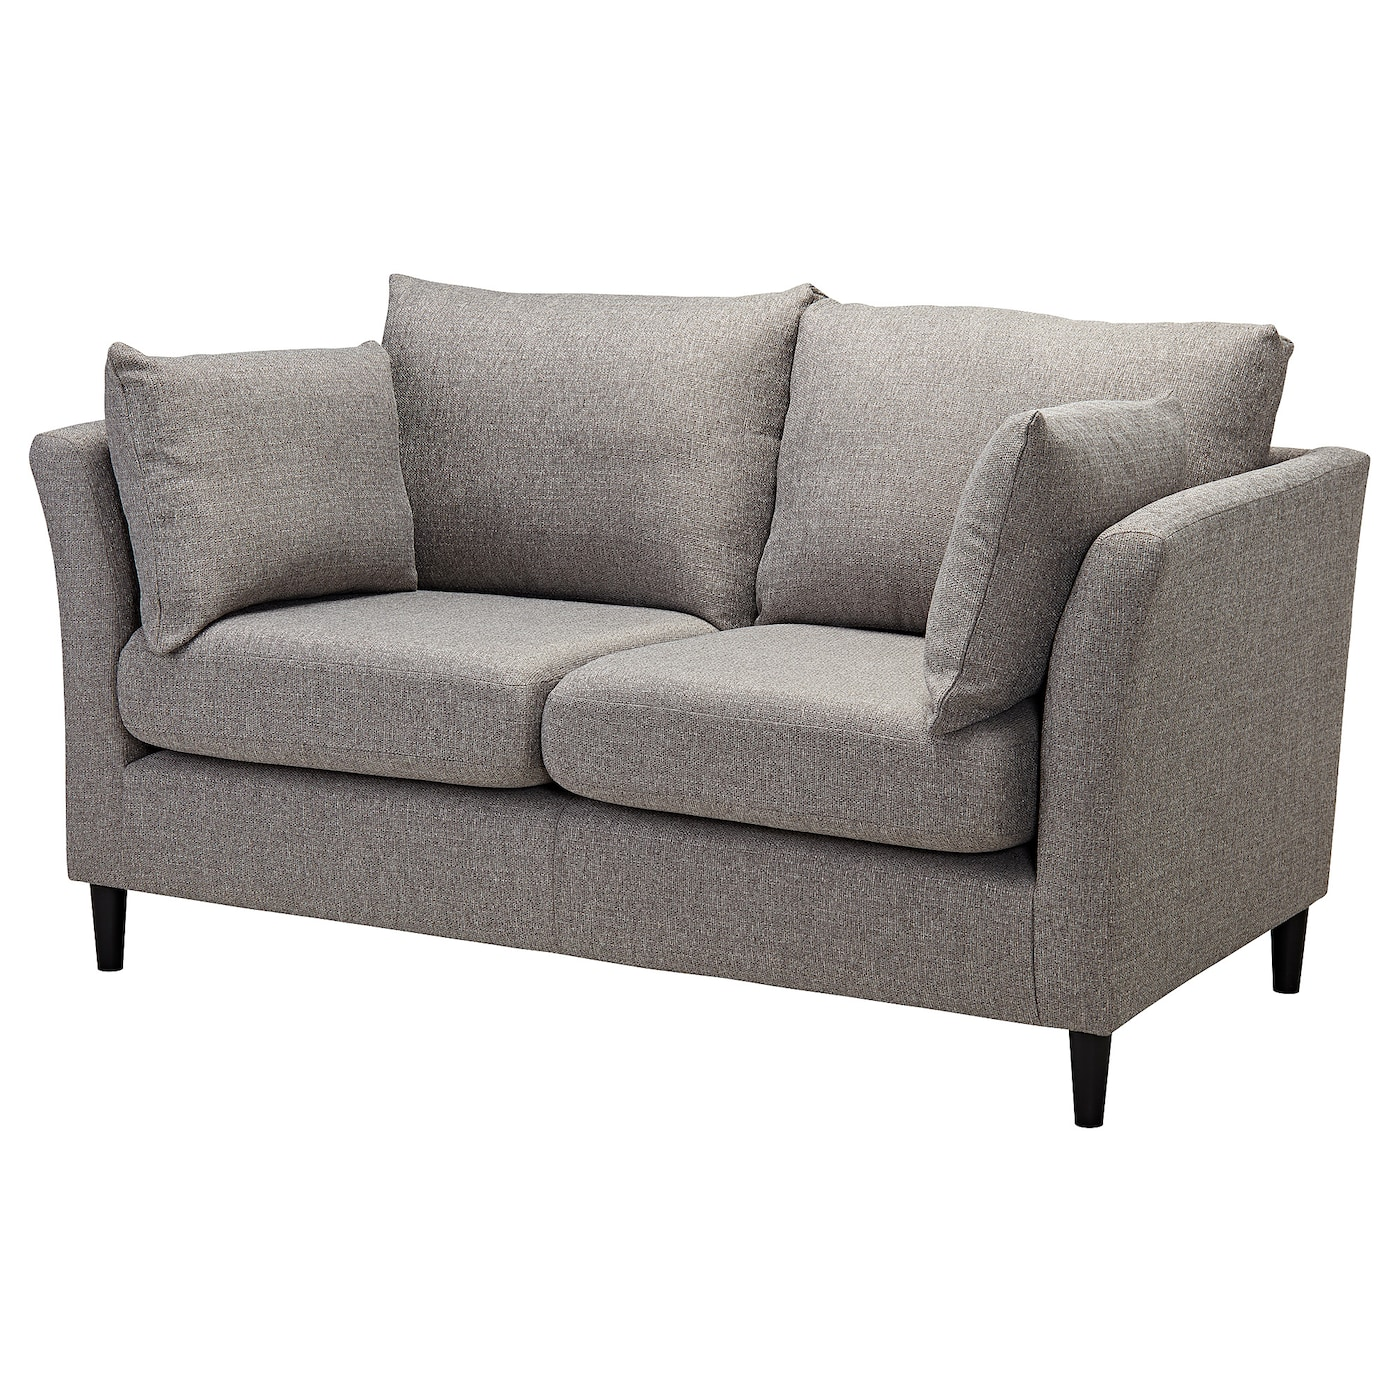 Ikea Bankeryd Two Seat Sofa